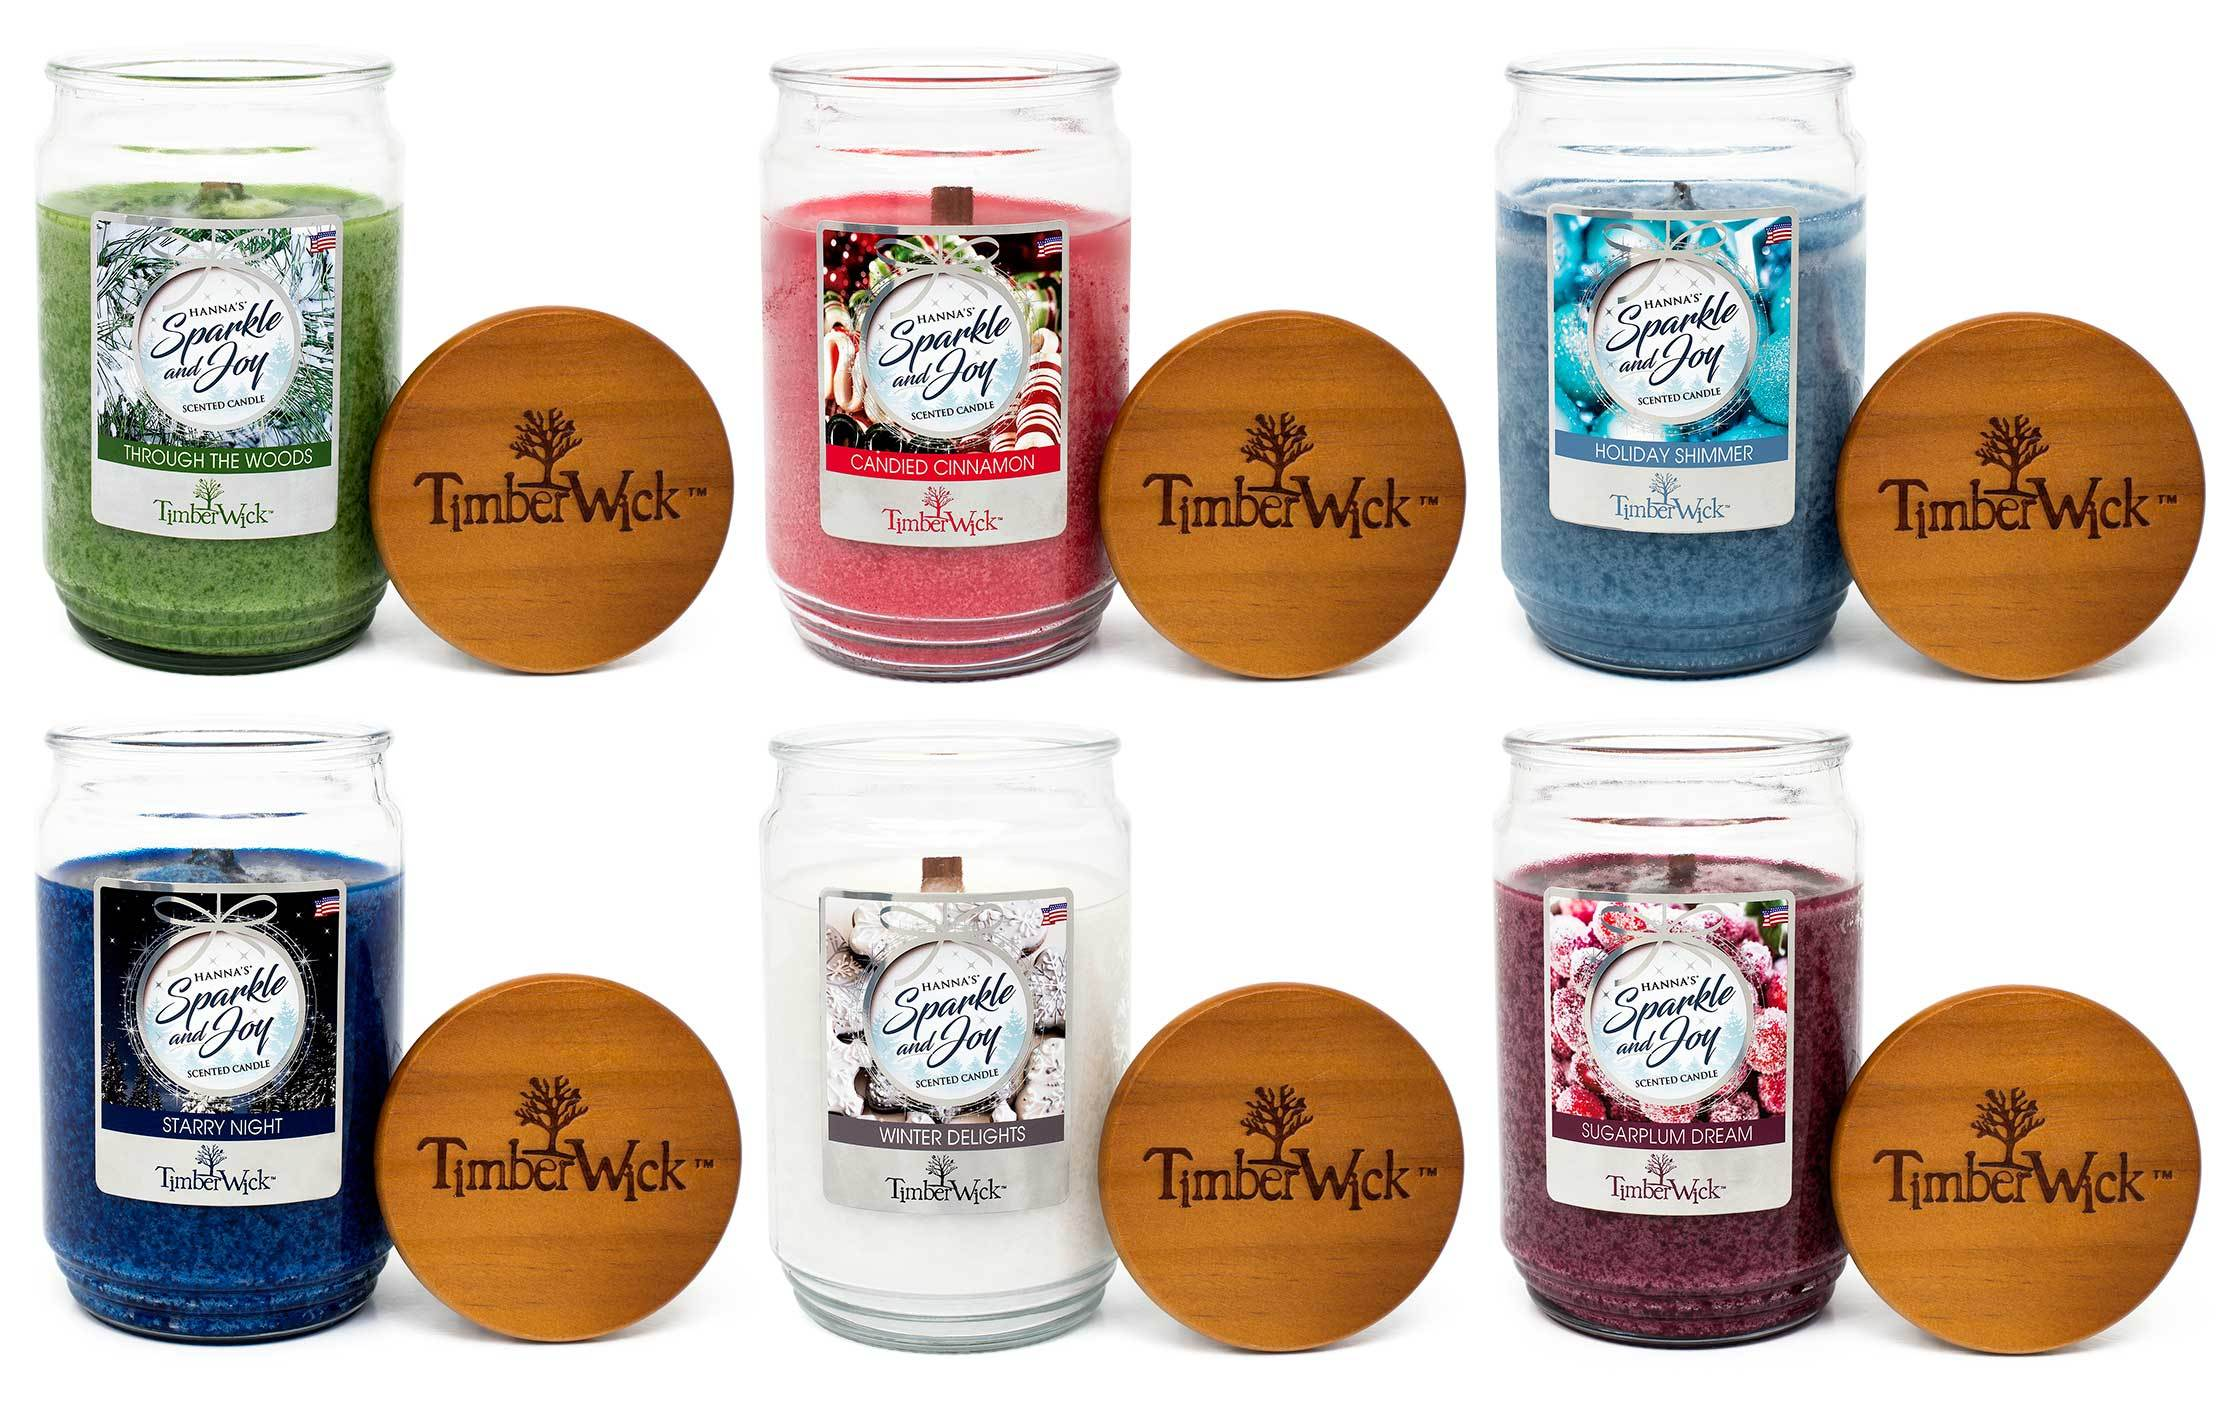 TimberWick Winter Delights Mottled Scented Wax Candle - Candlemart.com